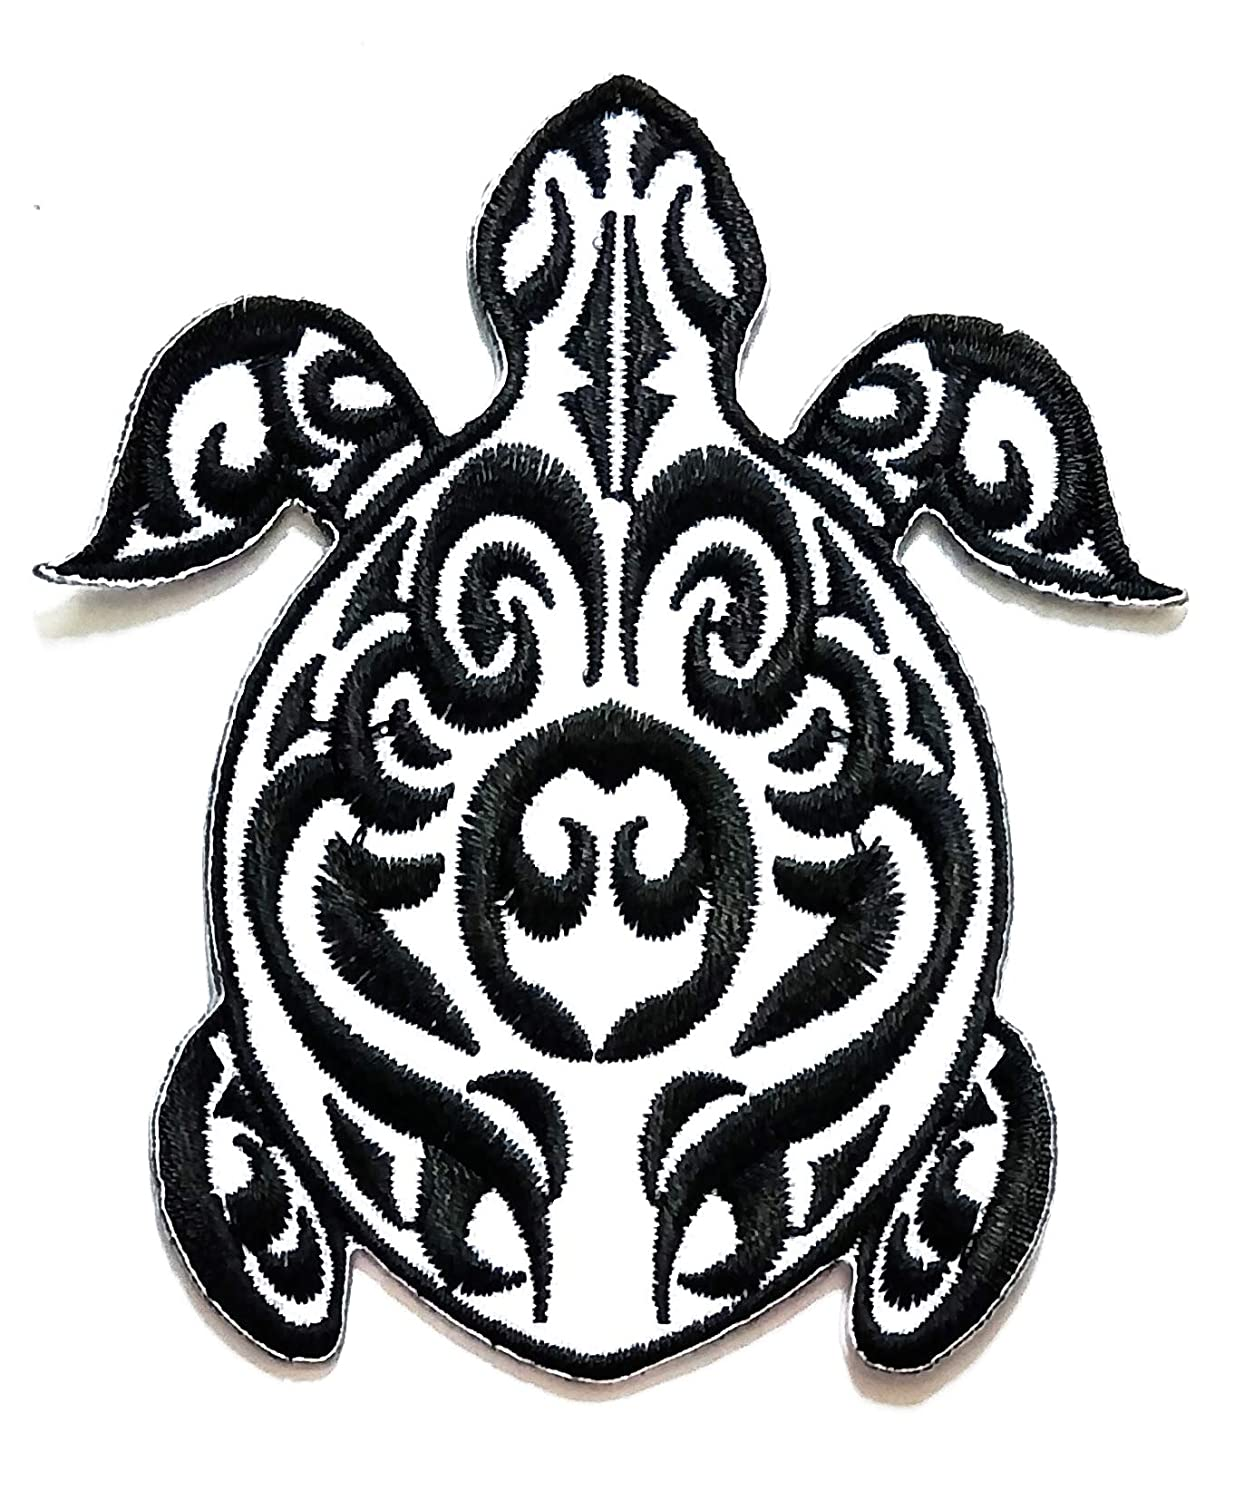 Nipitshop Patches White Black Beautiful Fantasy Turtle sea Animal Cartoon Kids Patch Embroidered Iron On Patch for Clothes Backpacks T-Shirt Jeans Skirt Vests Scarf Hat Bag